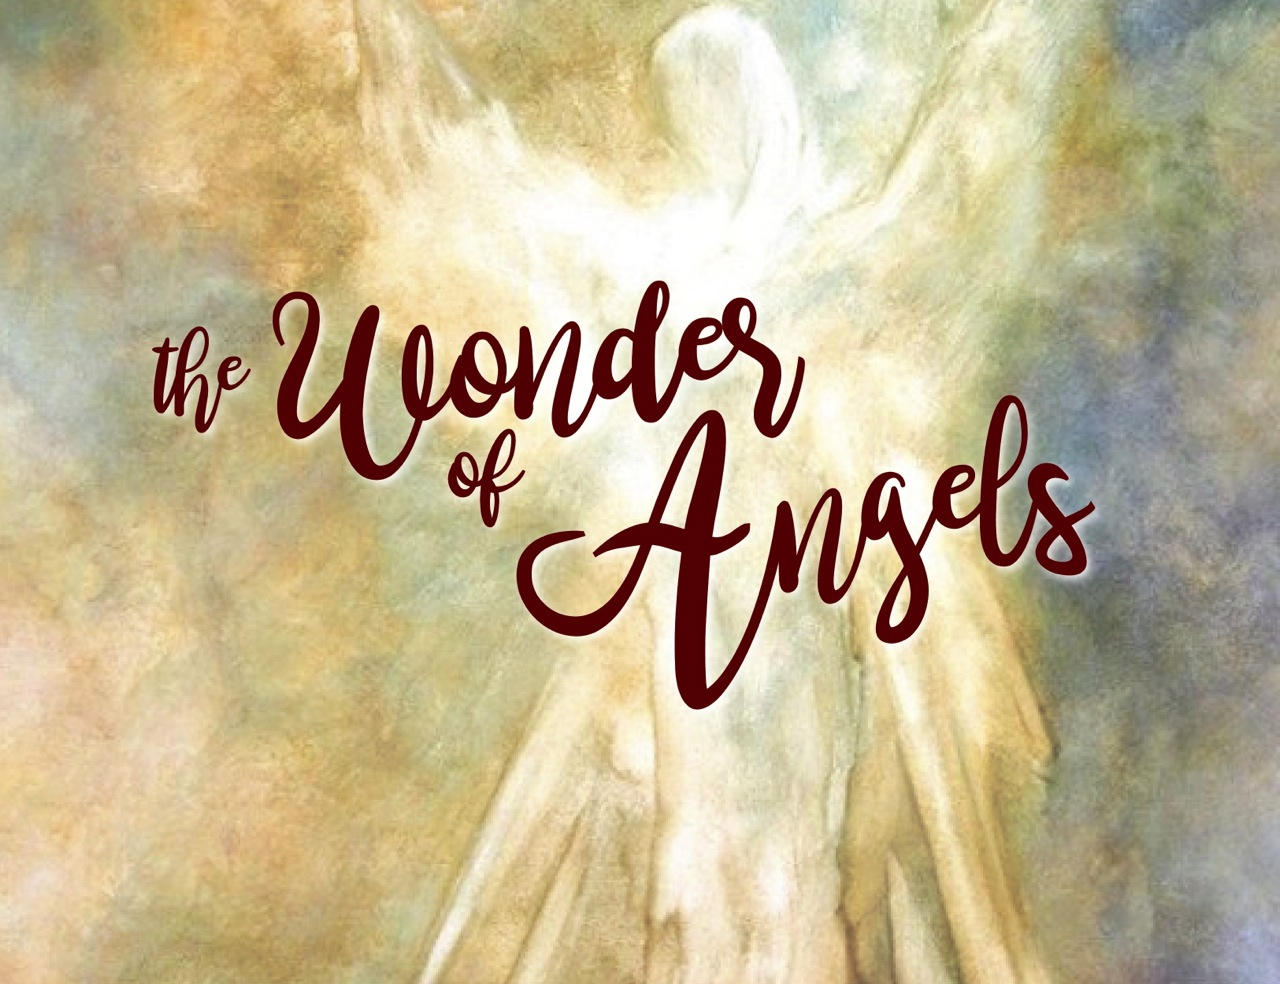 Angels Series_Wonder of Angels_Cover Slide.jpg